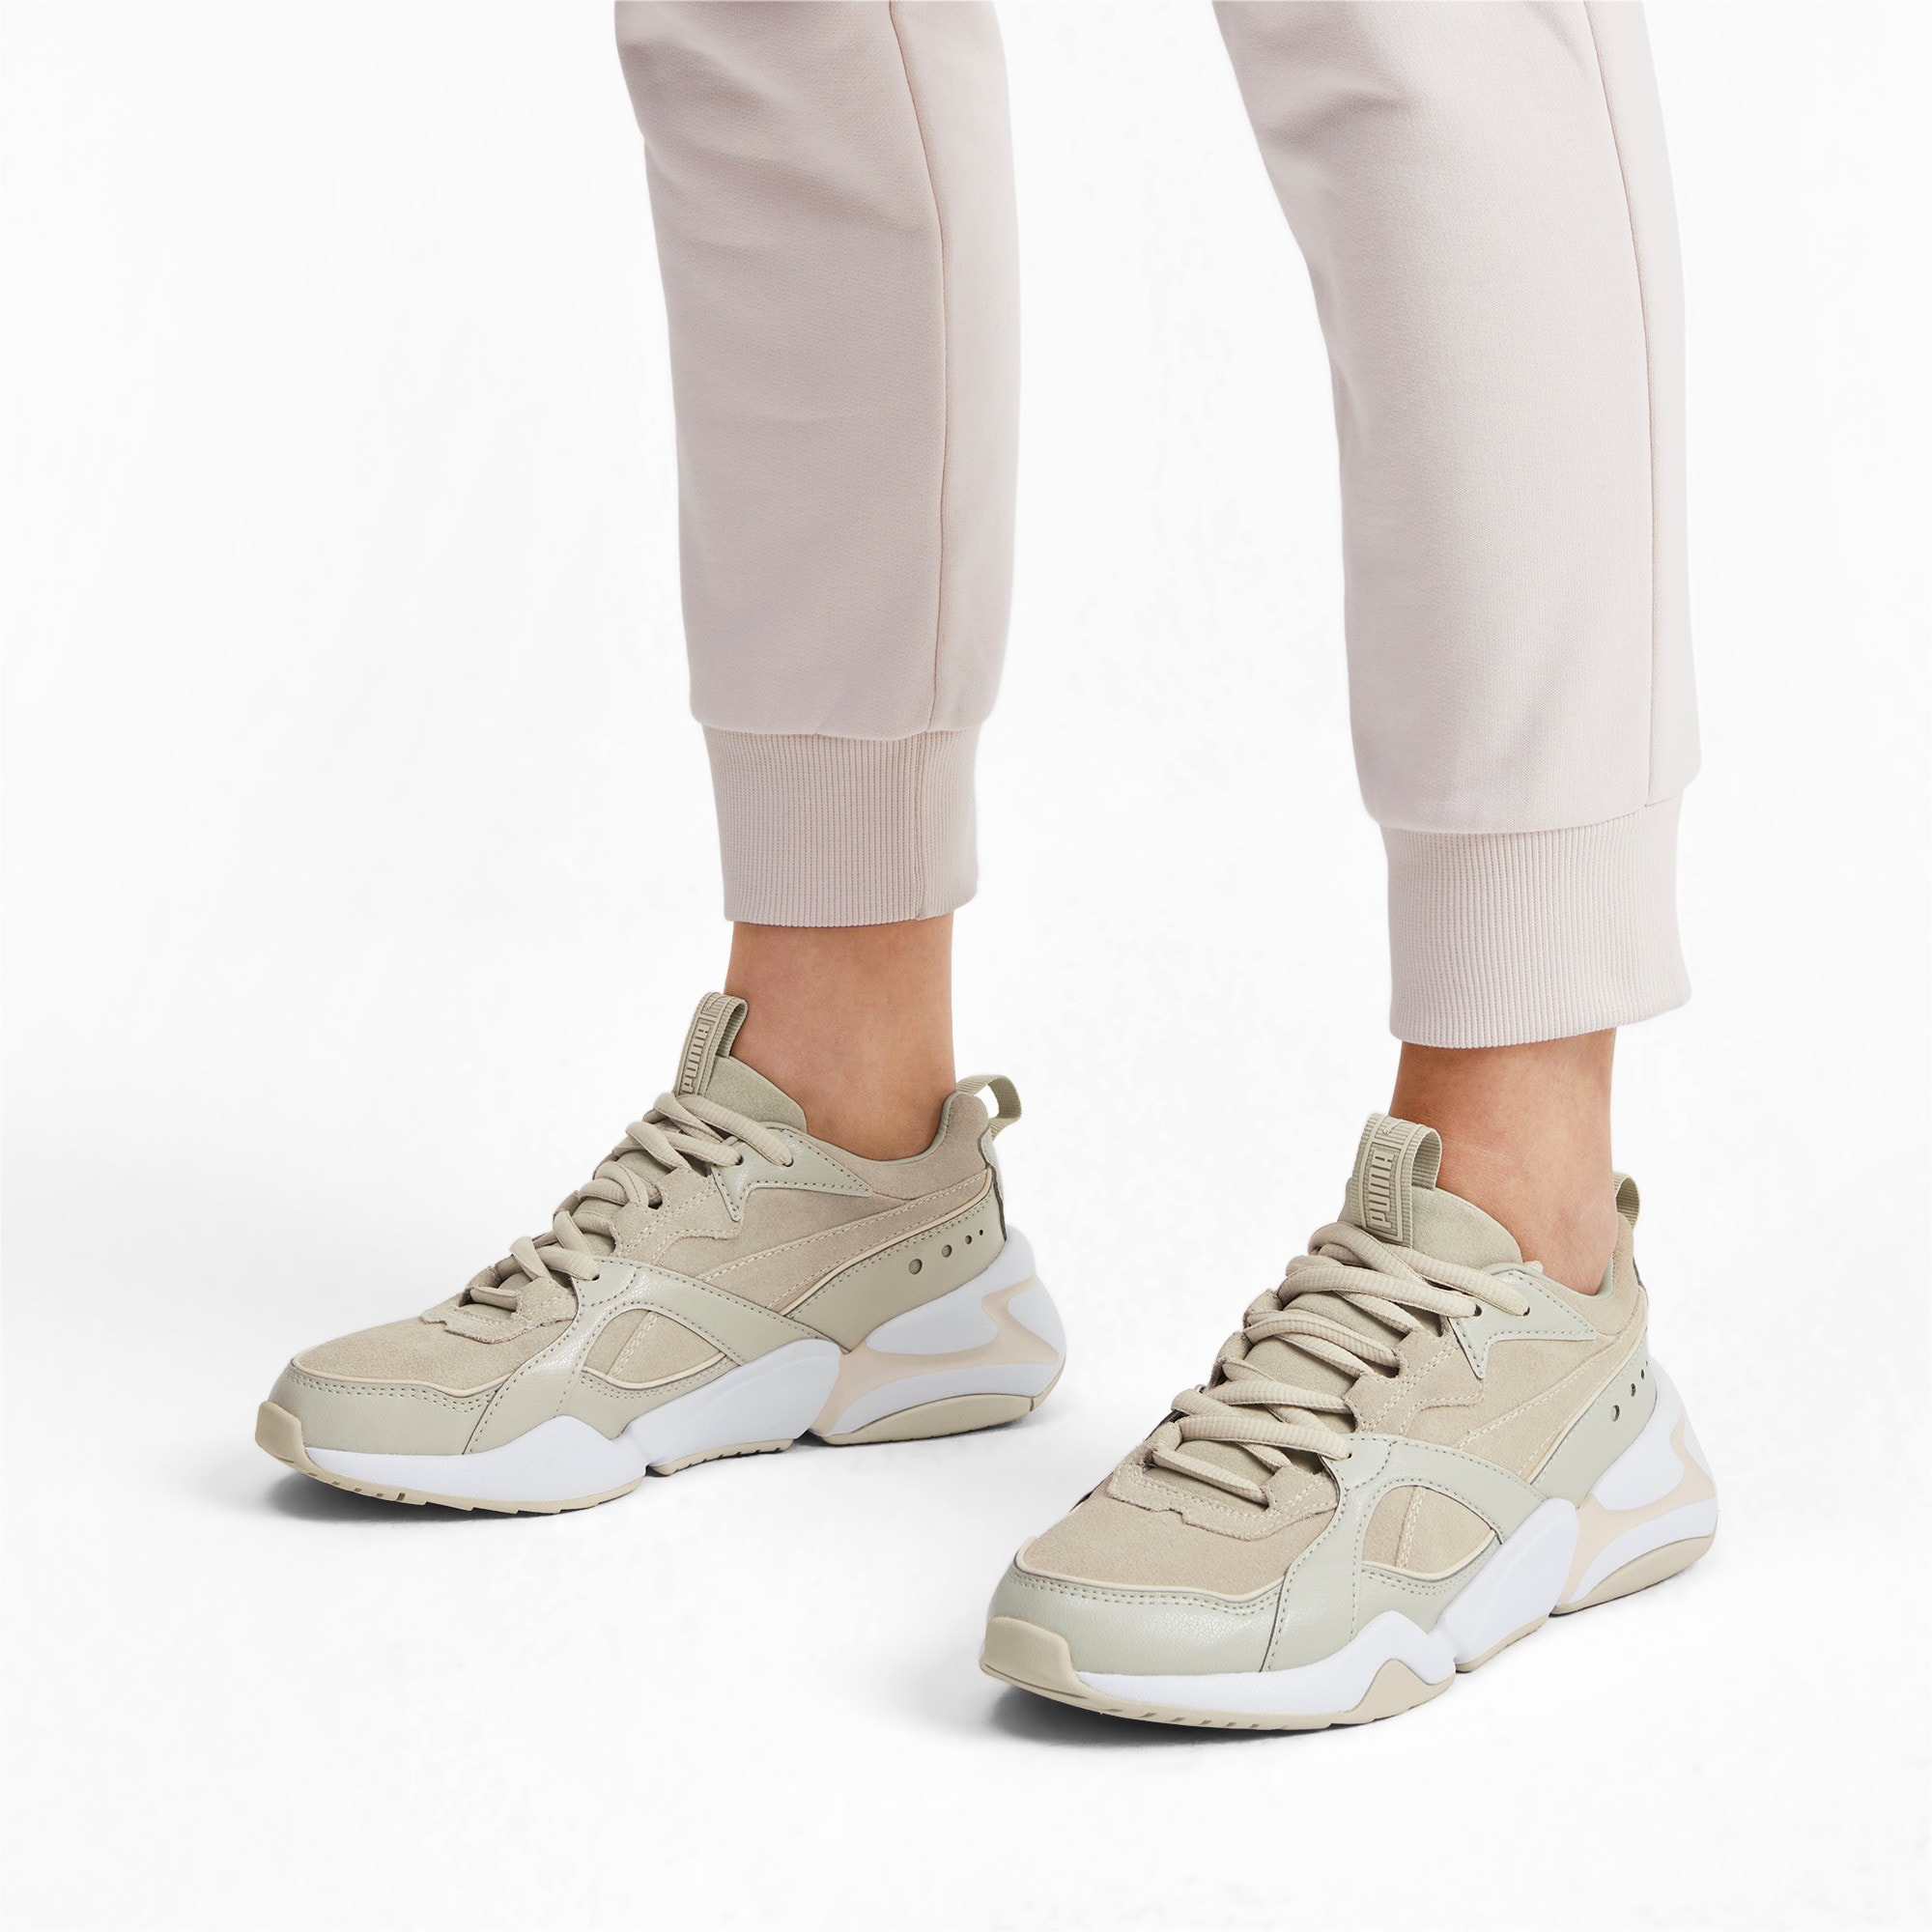 Nova 2 Suede Women's Sneakers, Overcast-White Smoke, large